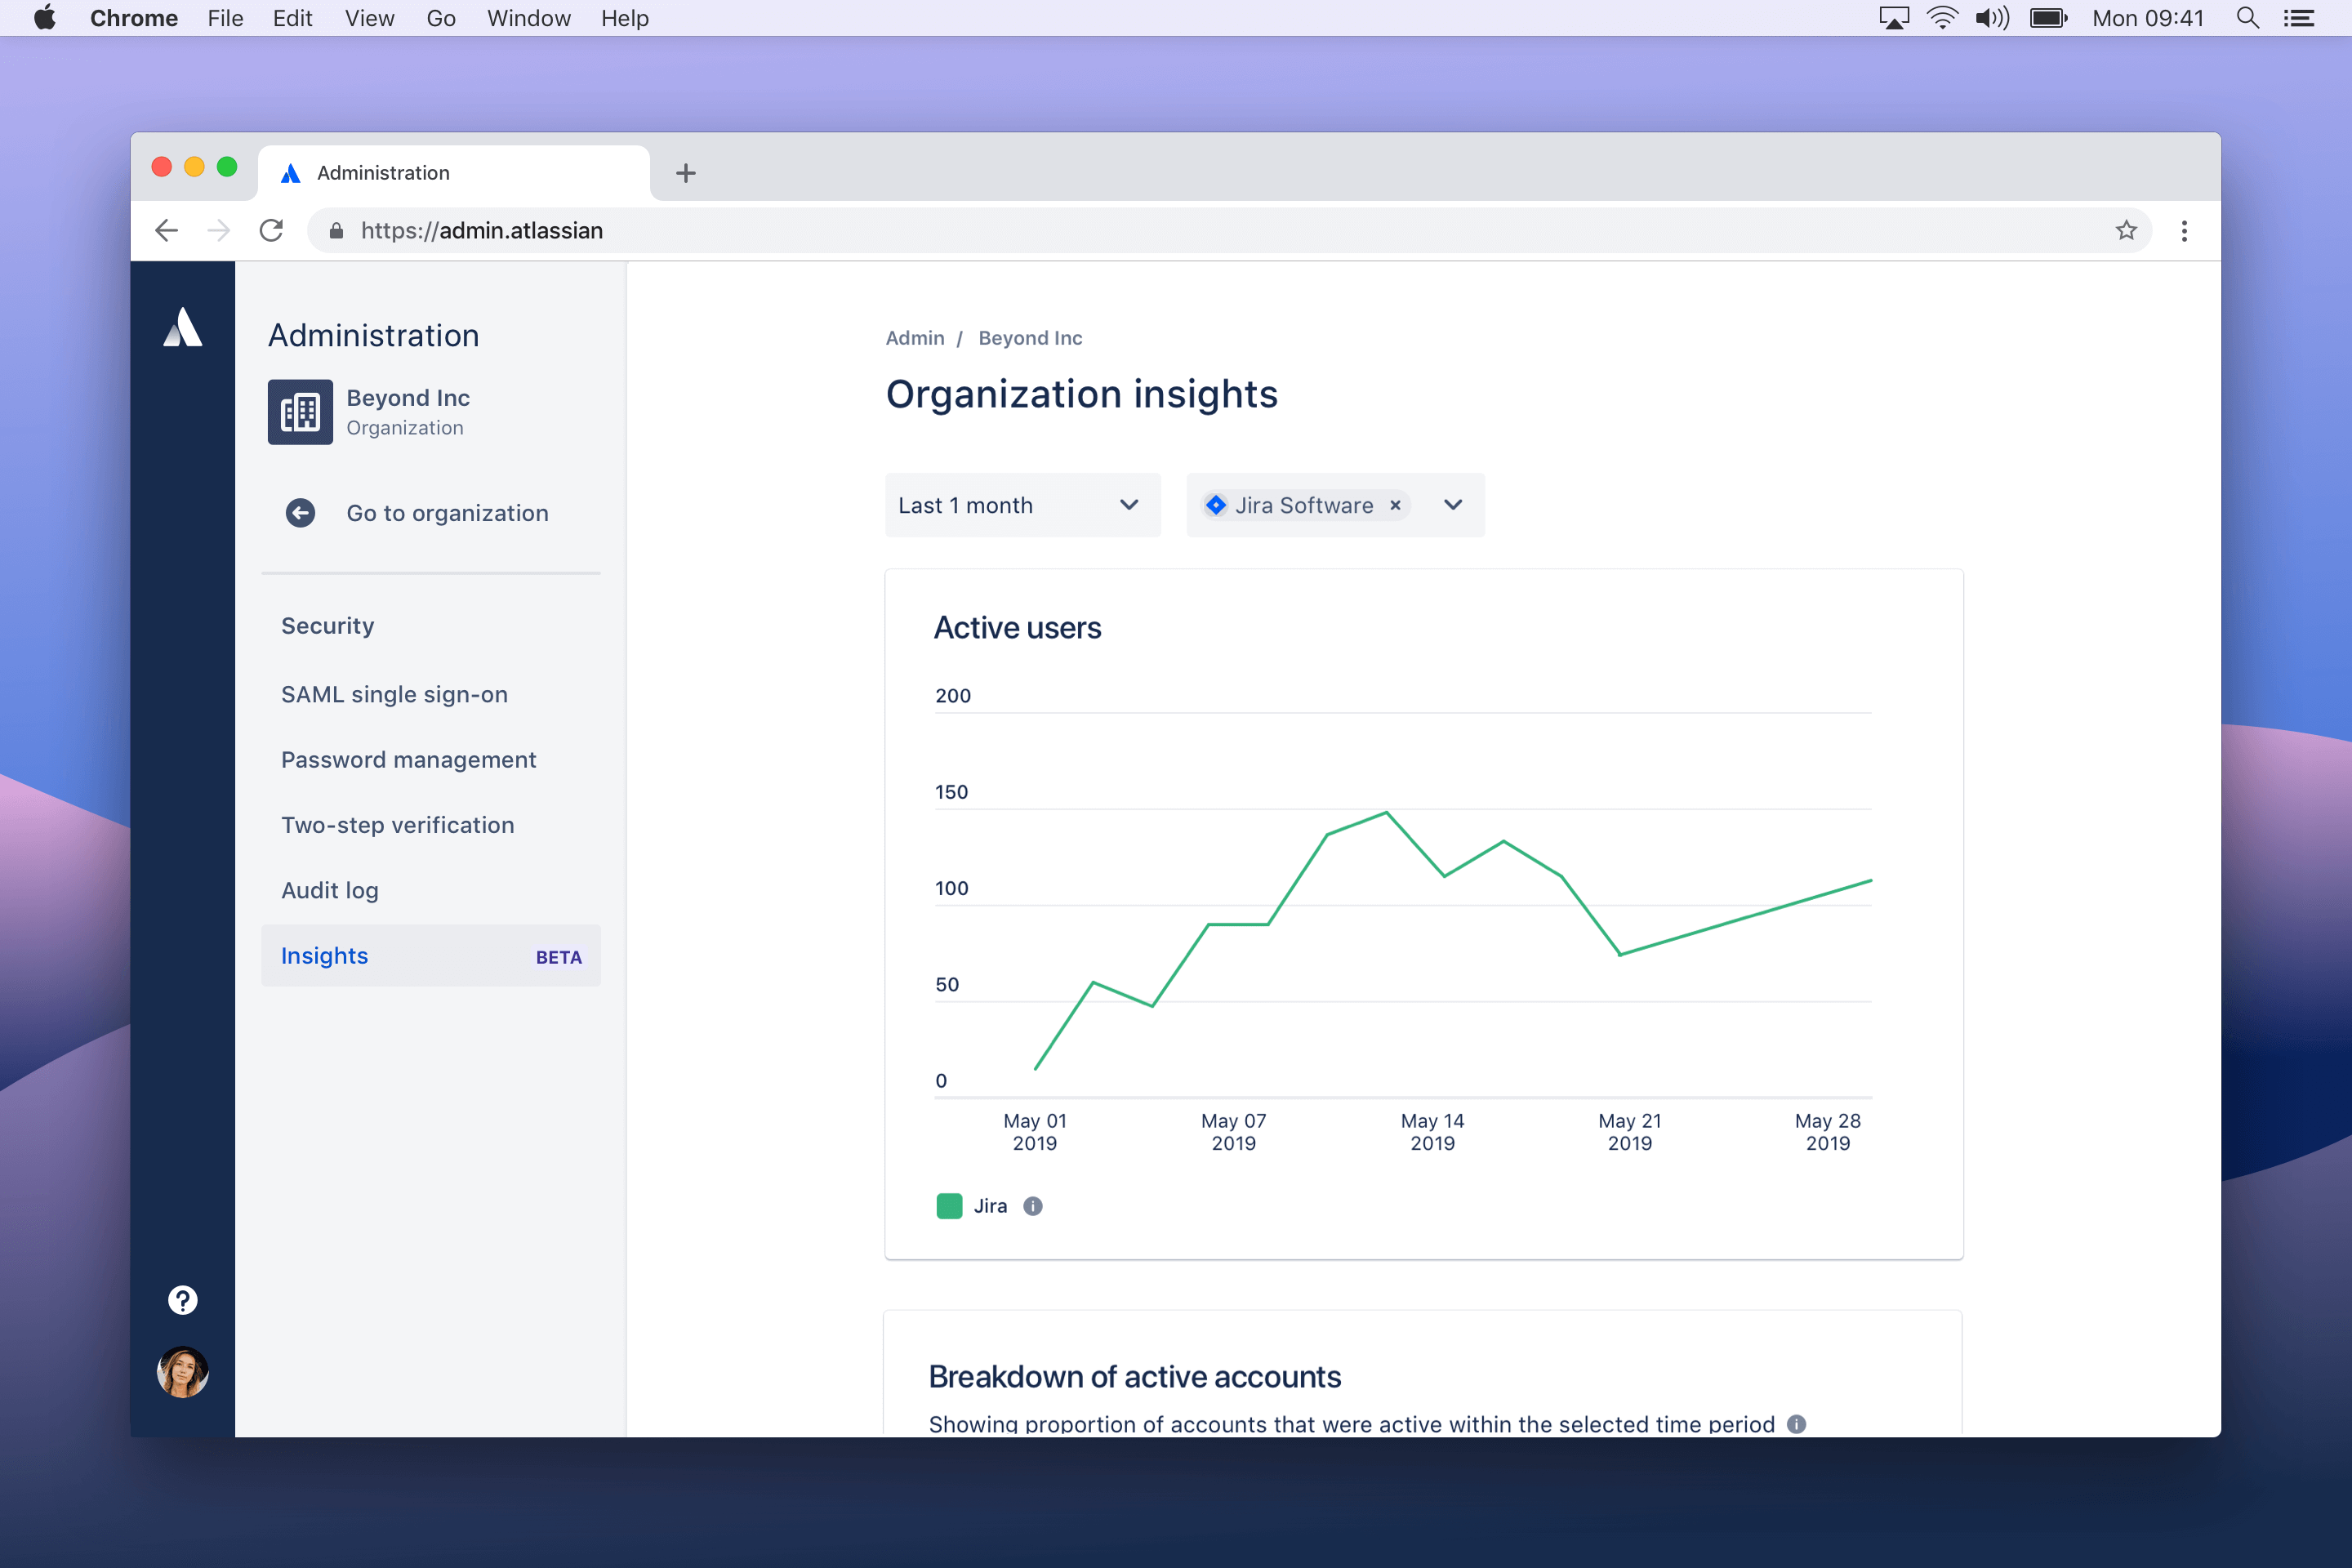 Admin insights screenshot